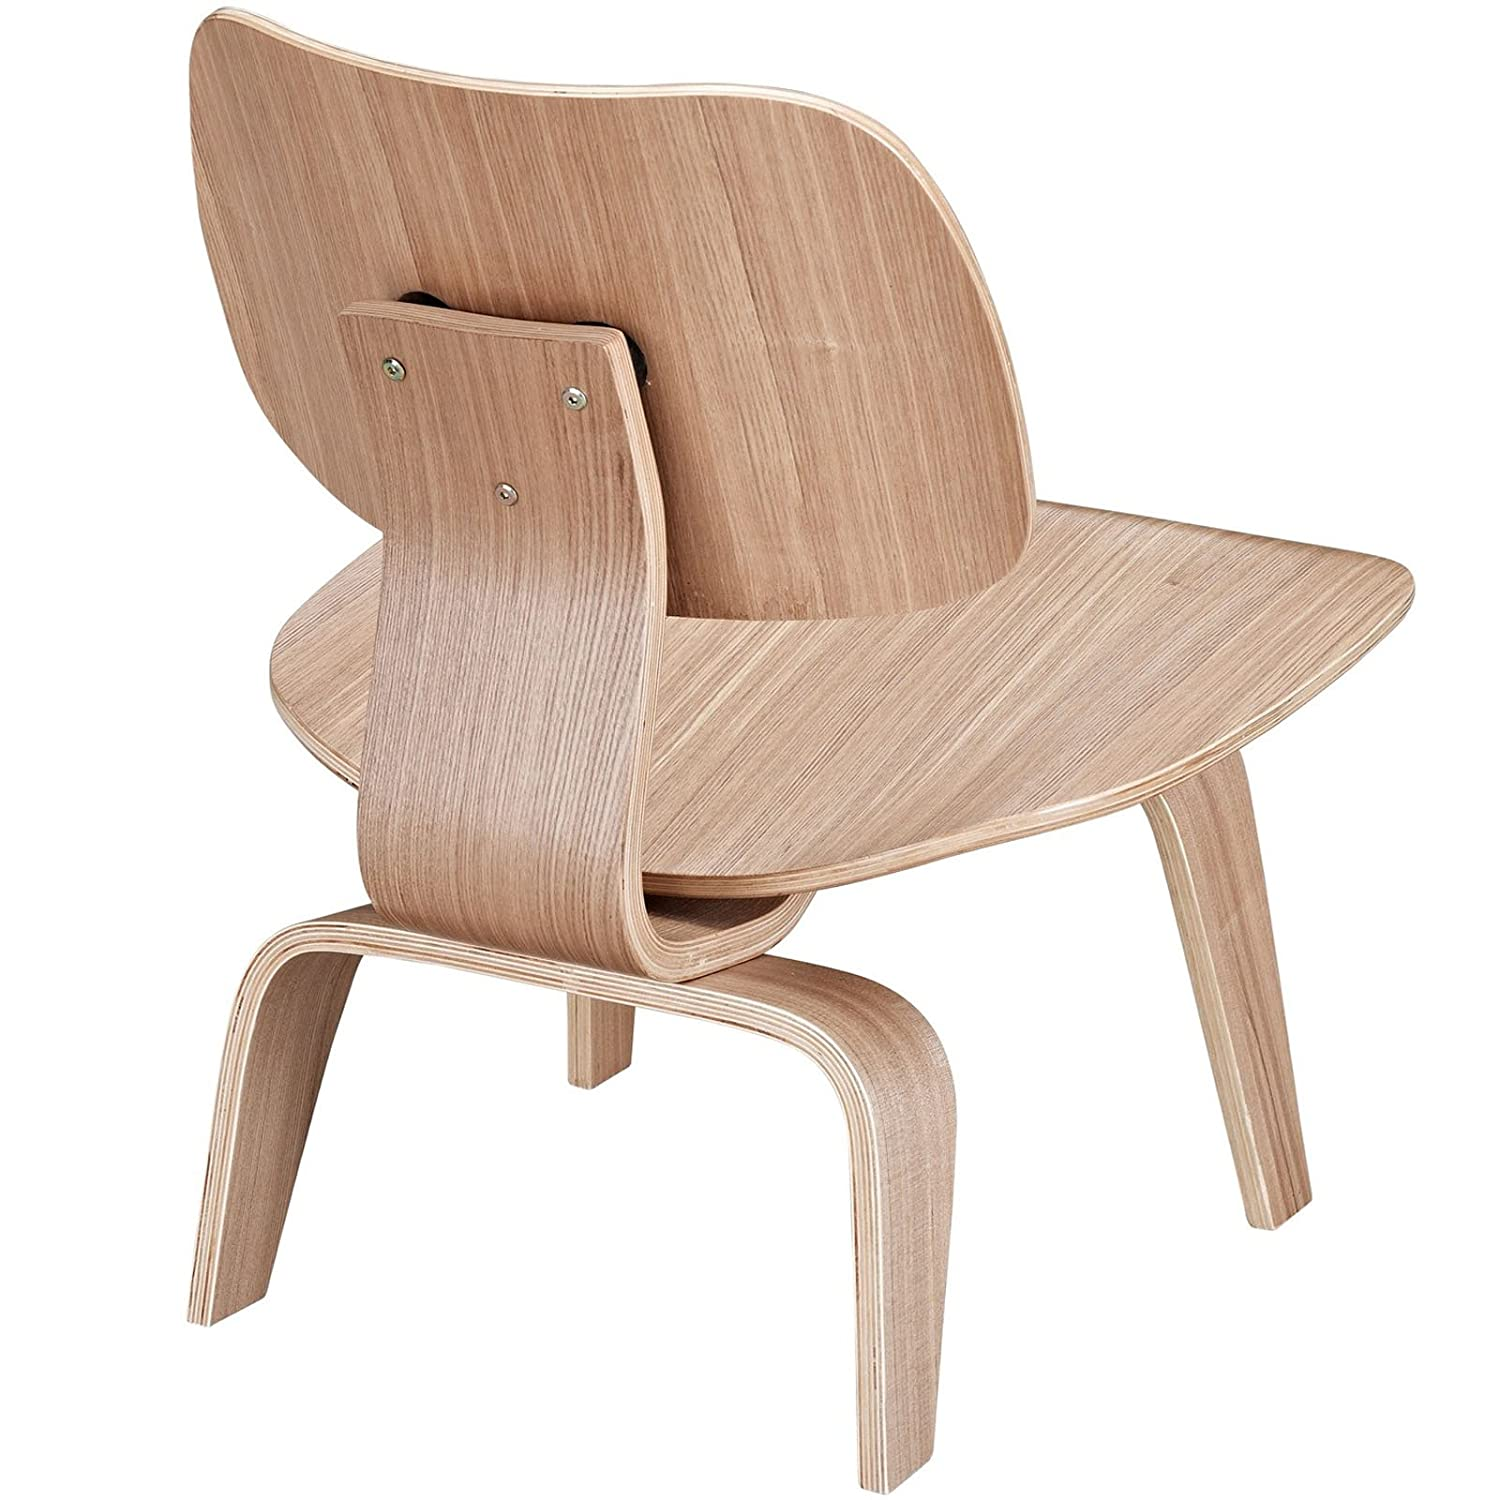 Bent Plywood Chair - Amazon com modway fathom plywood lounge chair in natural kitchen dining